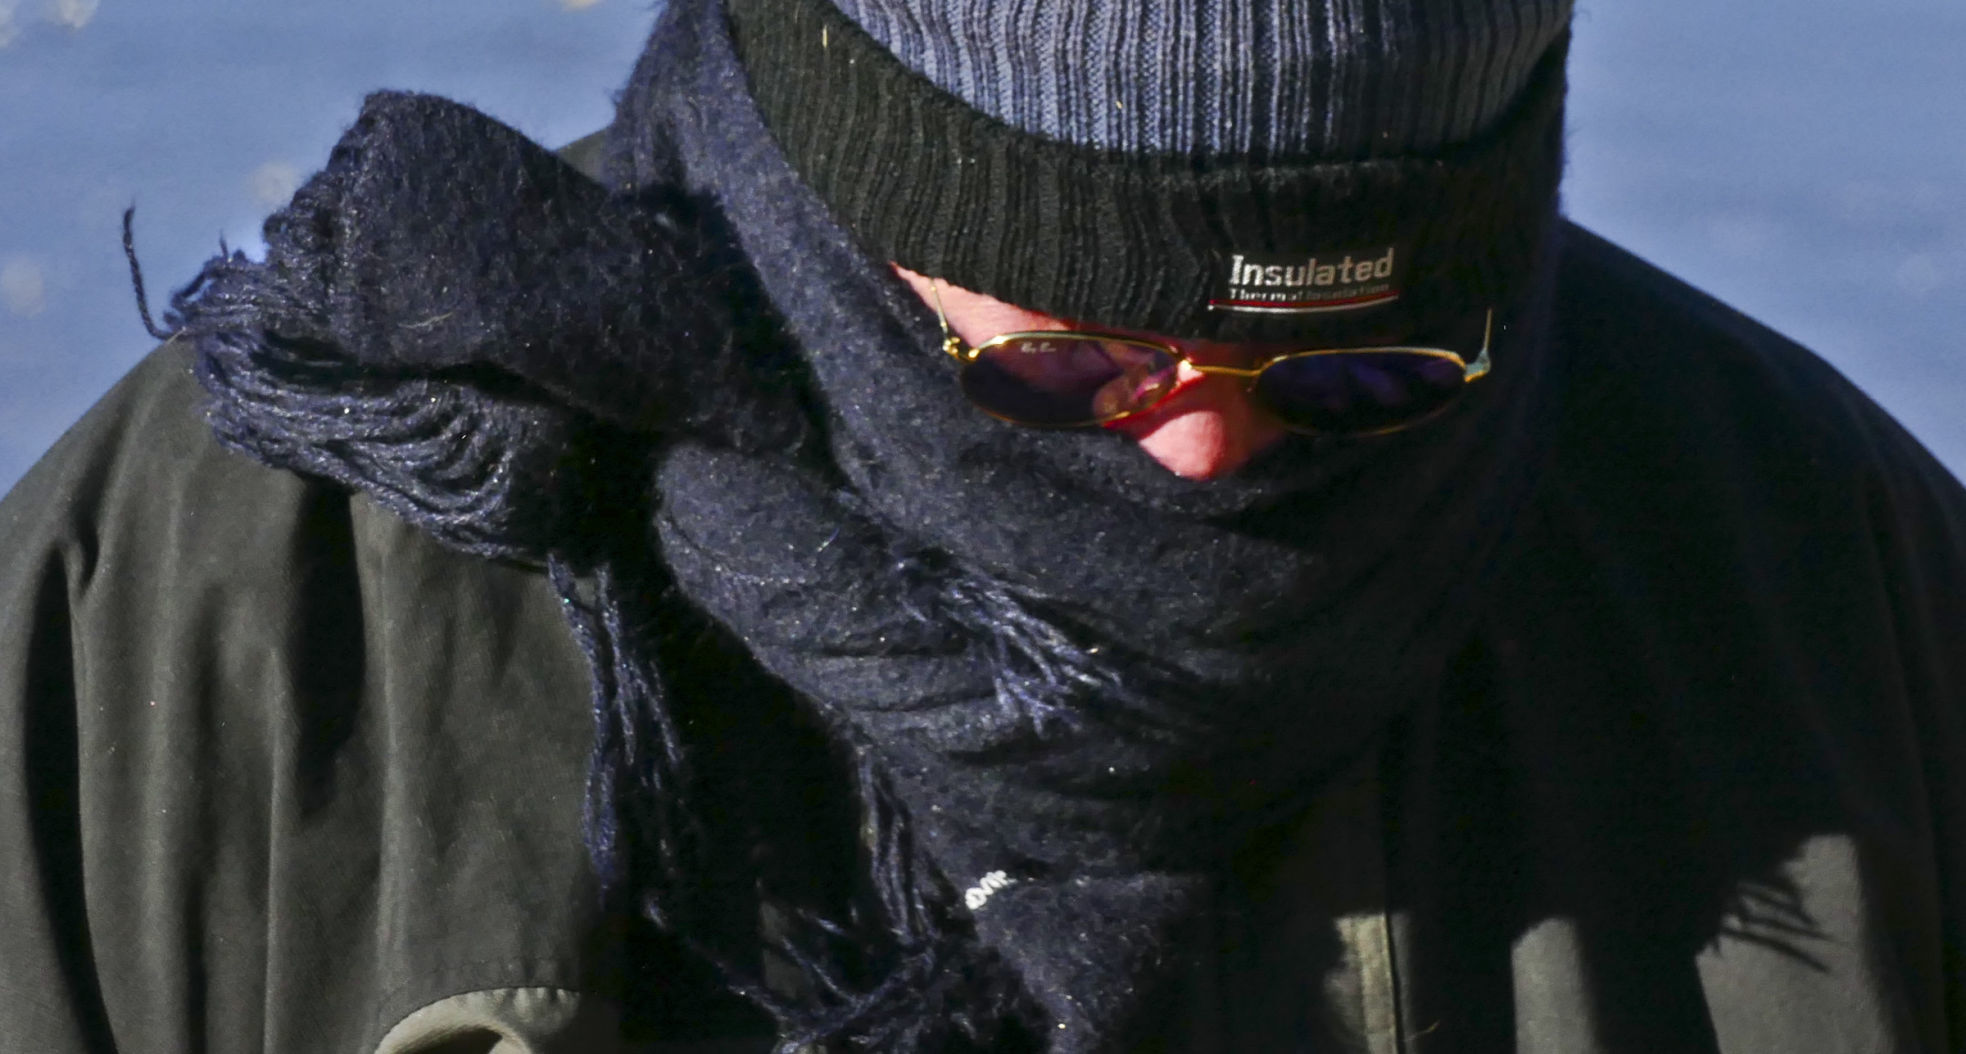 Temperatures in the 30s expected in Forsyth County Sunday night   Winston Salem Journal